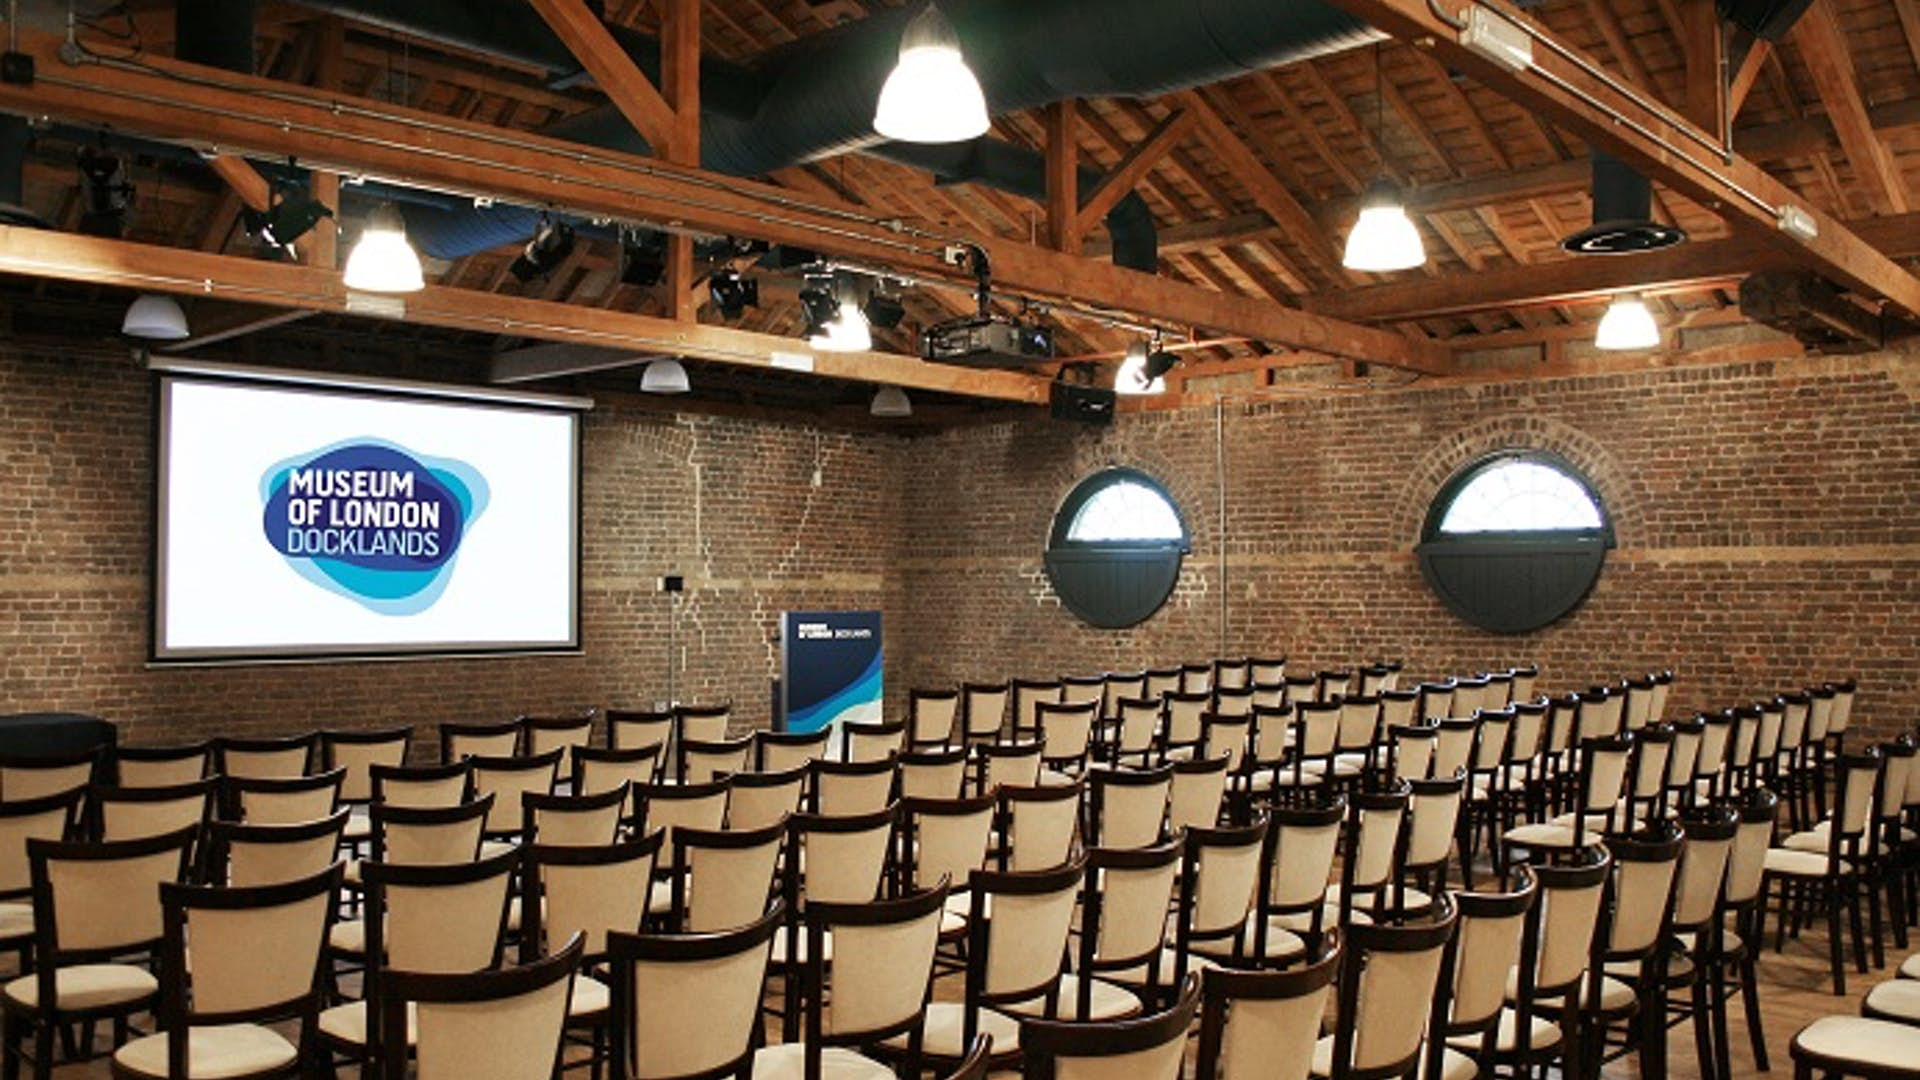 Wilberforce Theatre Museum Of London Docklands